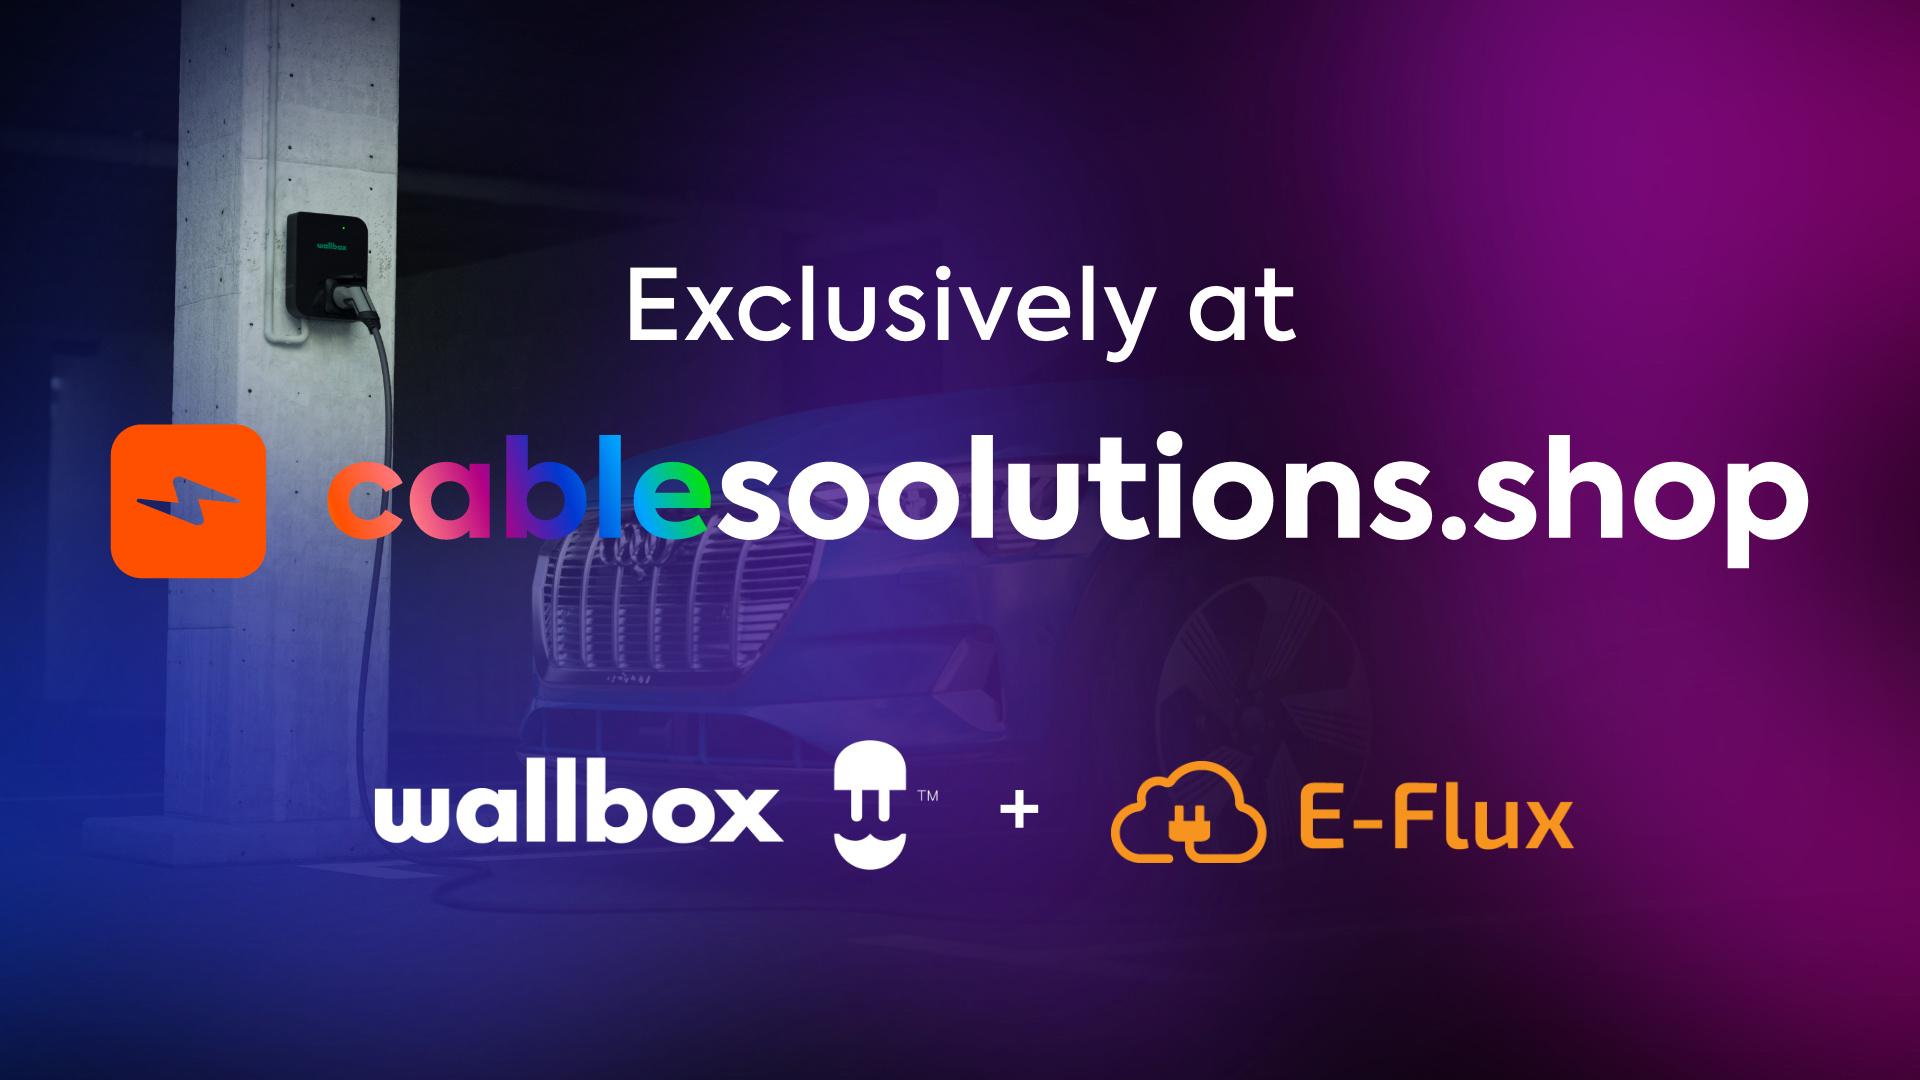 Soolutions, Wallbox  and E-Flux join forces